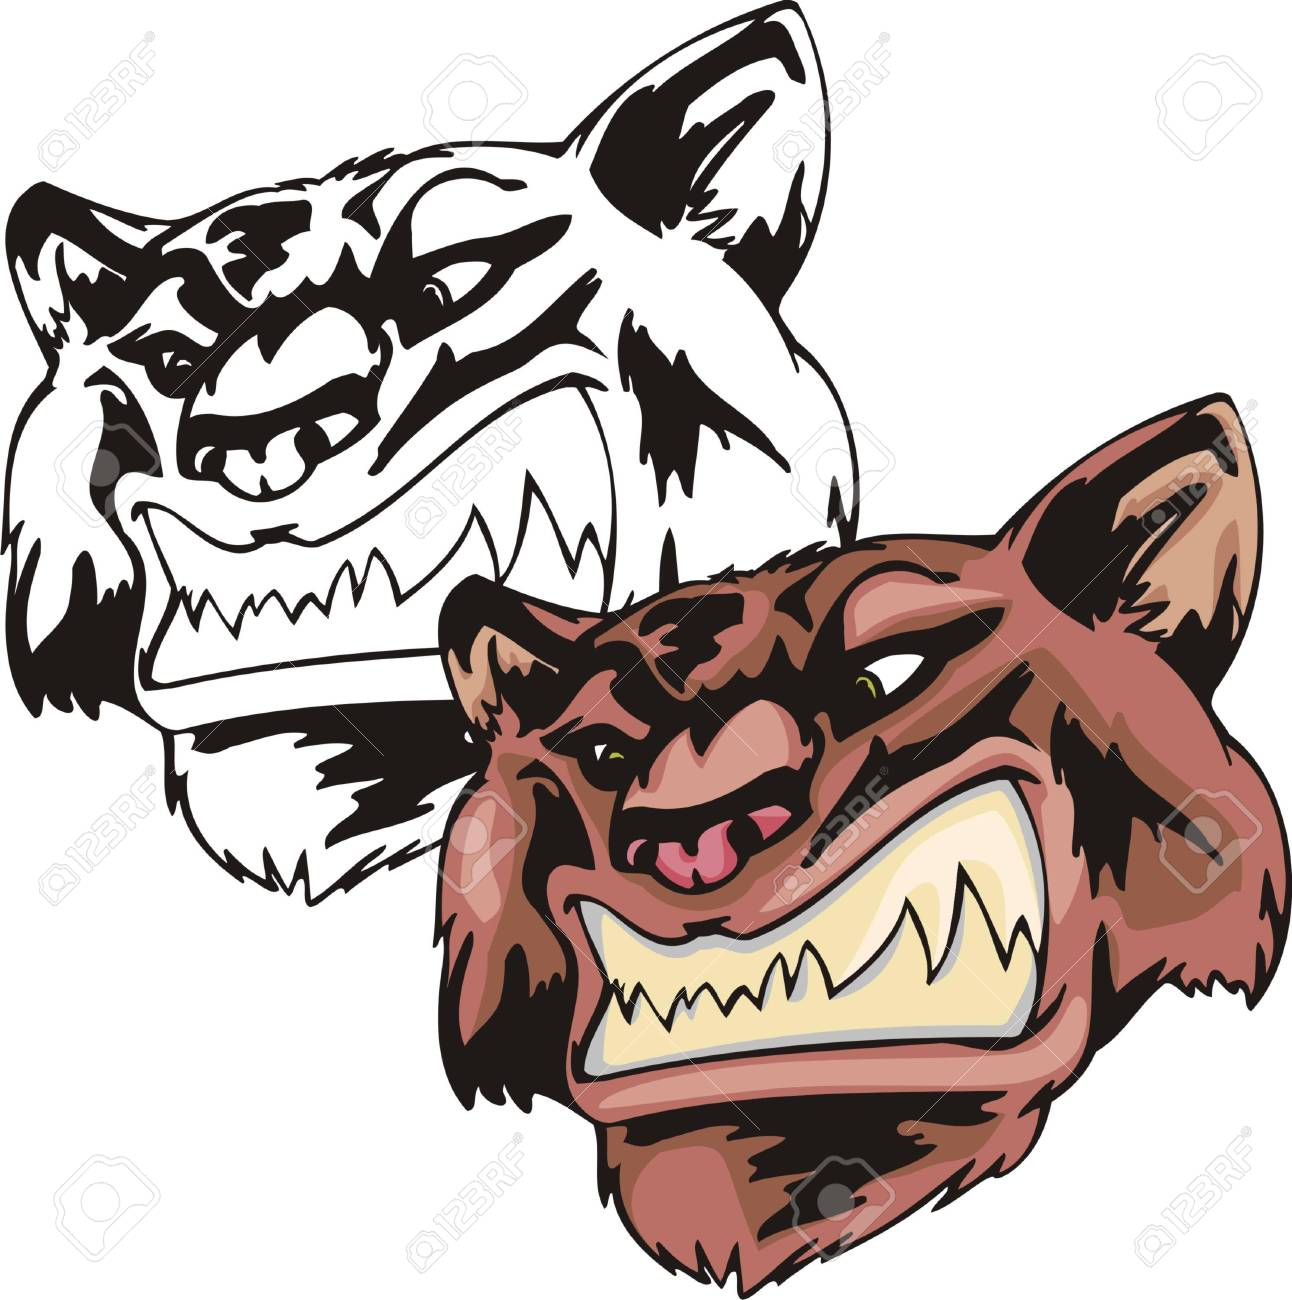 Wildcat with ravenous facial expression, hunts for victim. Mascot template. Vector illustration - color + b/w versions. Stock Vector - 8594691